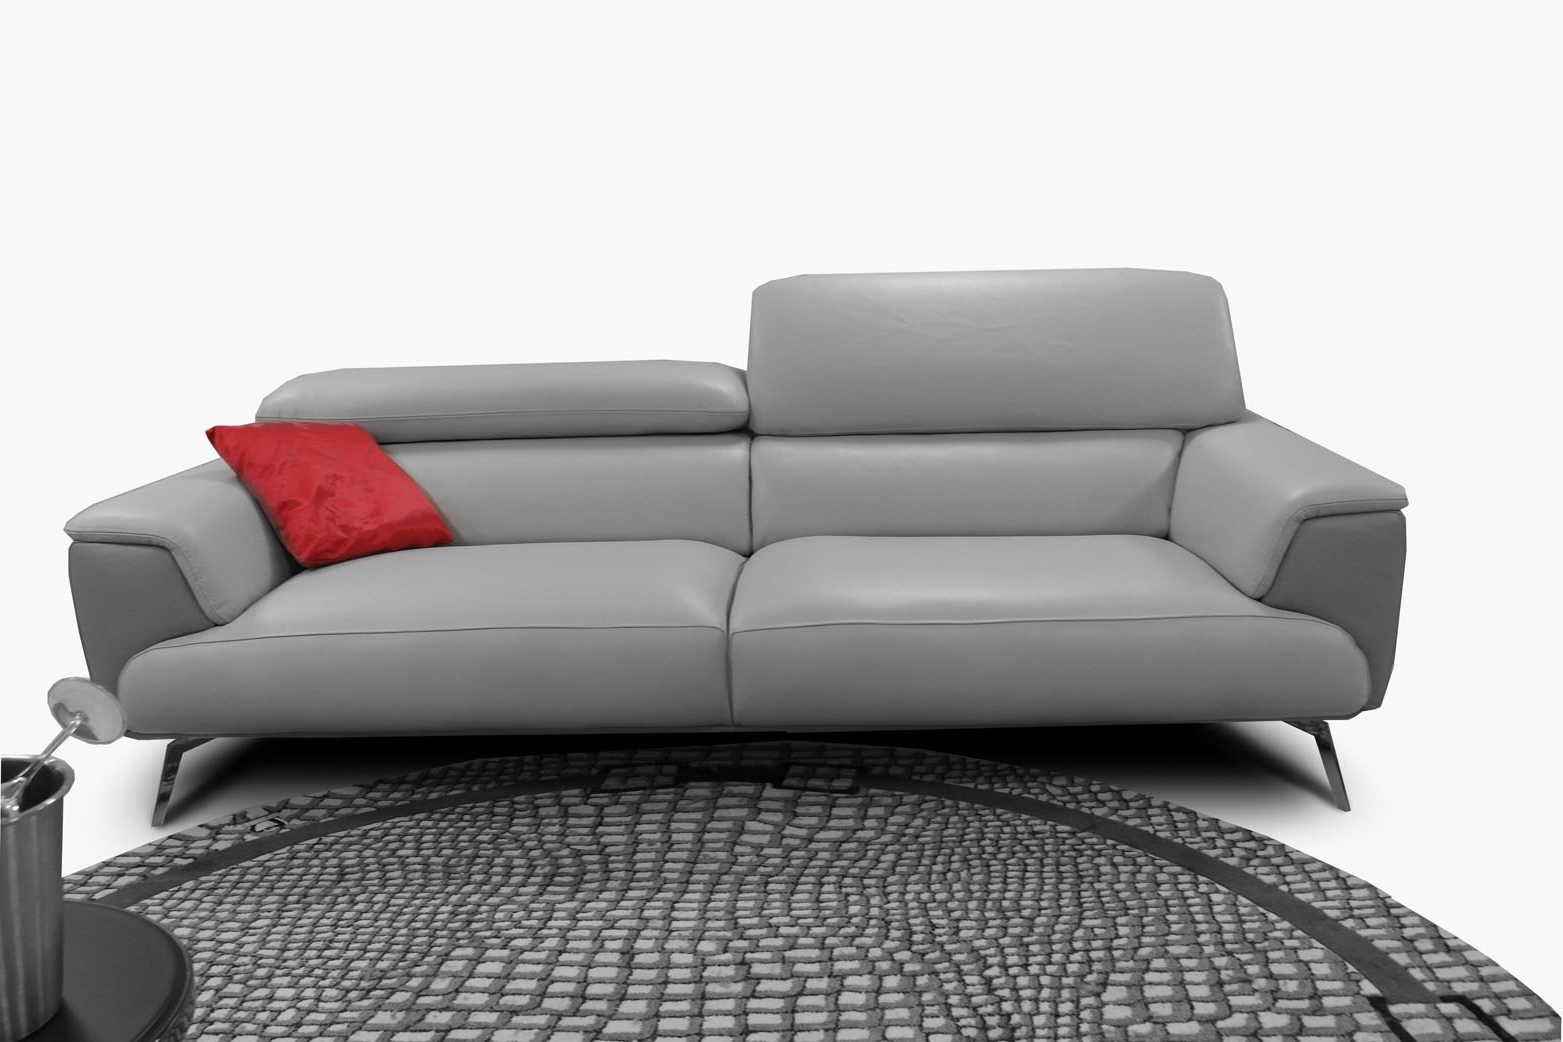 Preferred Round & Unusual Sofas • Nieribarcelona Throughout Unusual Sofas (View 9 of 15)